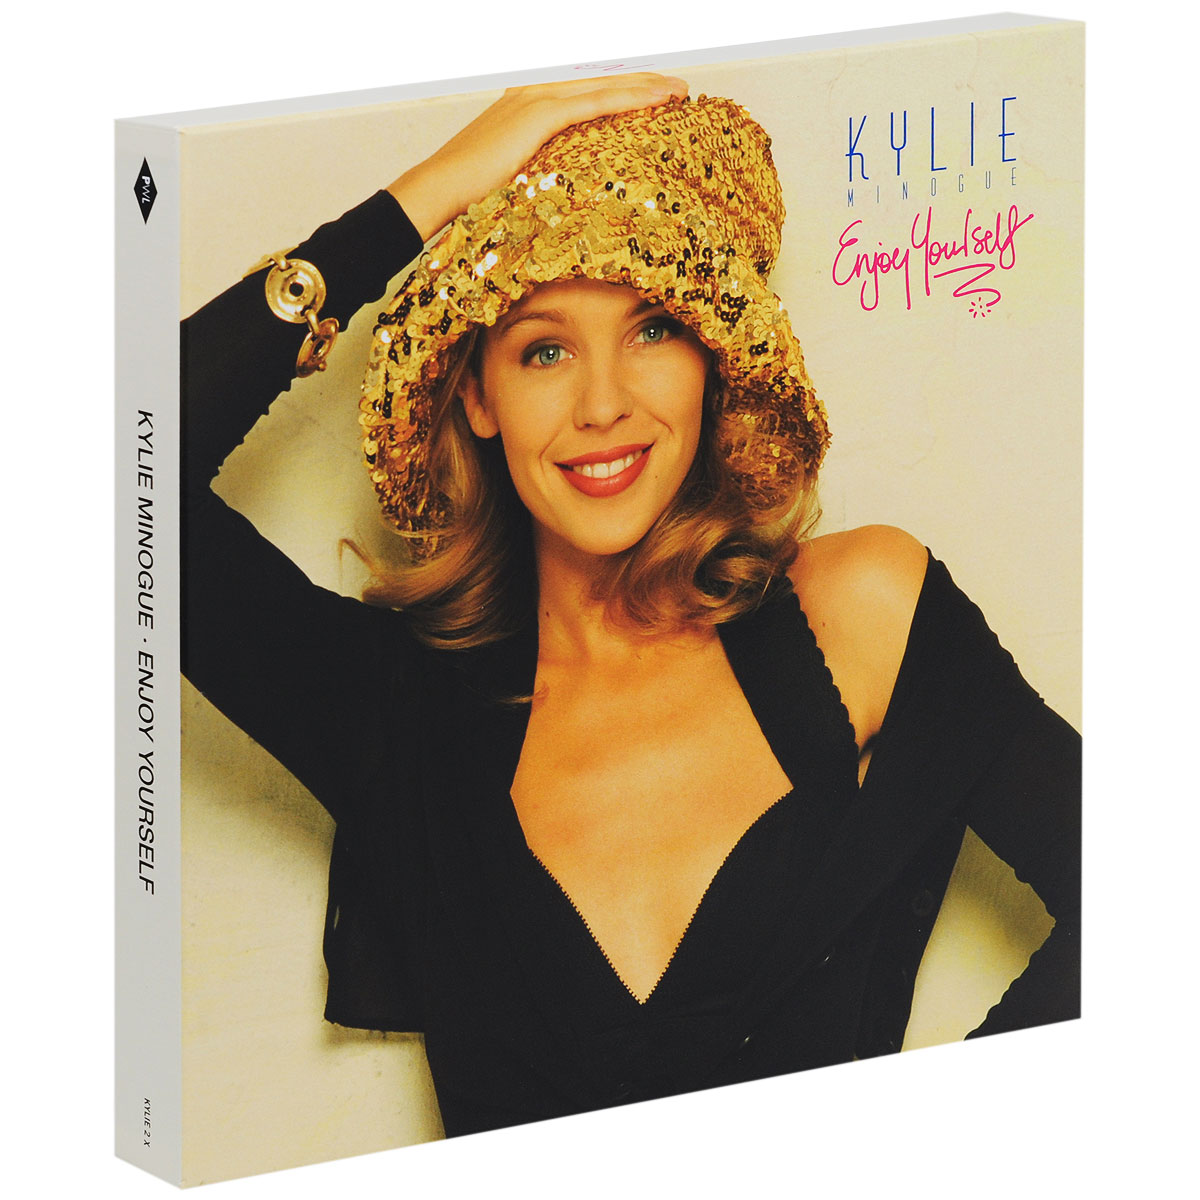 Кайли Миноуг Kylie Minogue. Enjoy Yourself (2 CD + DVD + LP) paddington on top